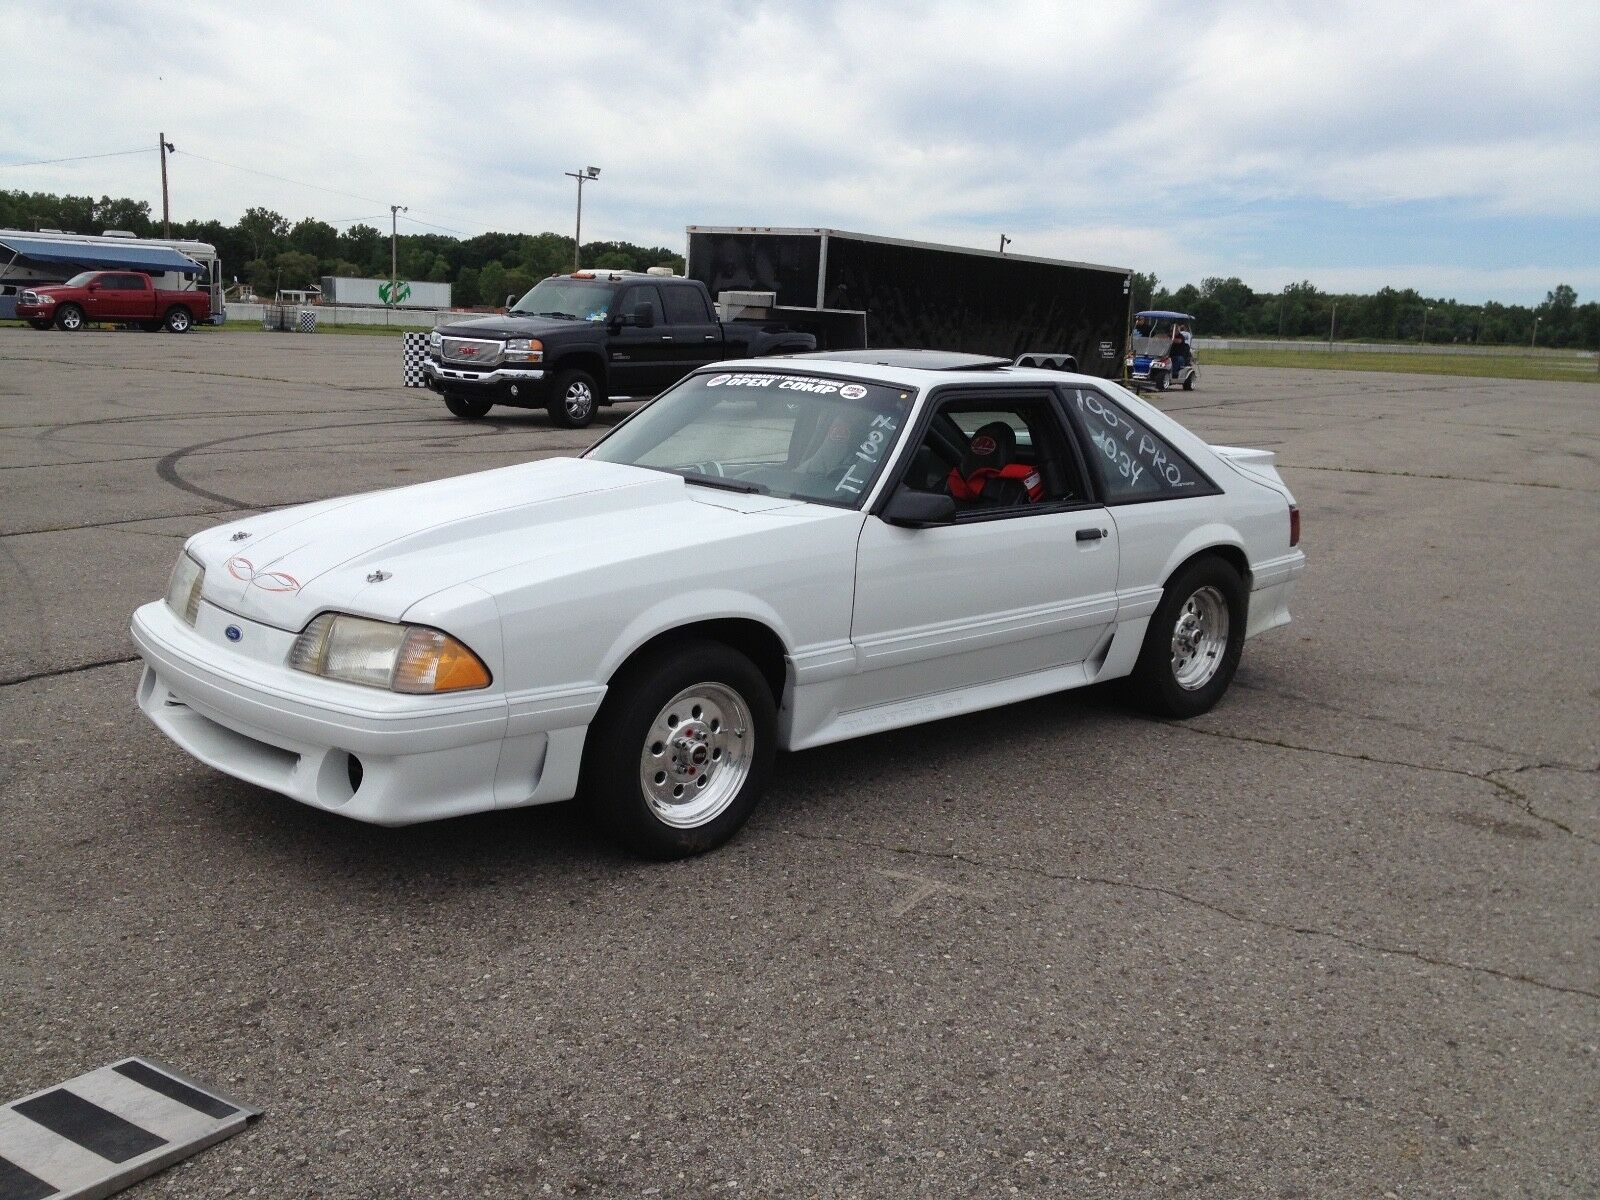 1988 Ford Mustang GT FORD MUSTANG GT DRAG RACE CAR AND 22' HAULMARK INCLOSED TRAILER COMBO